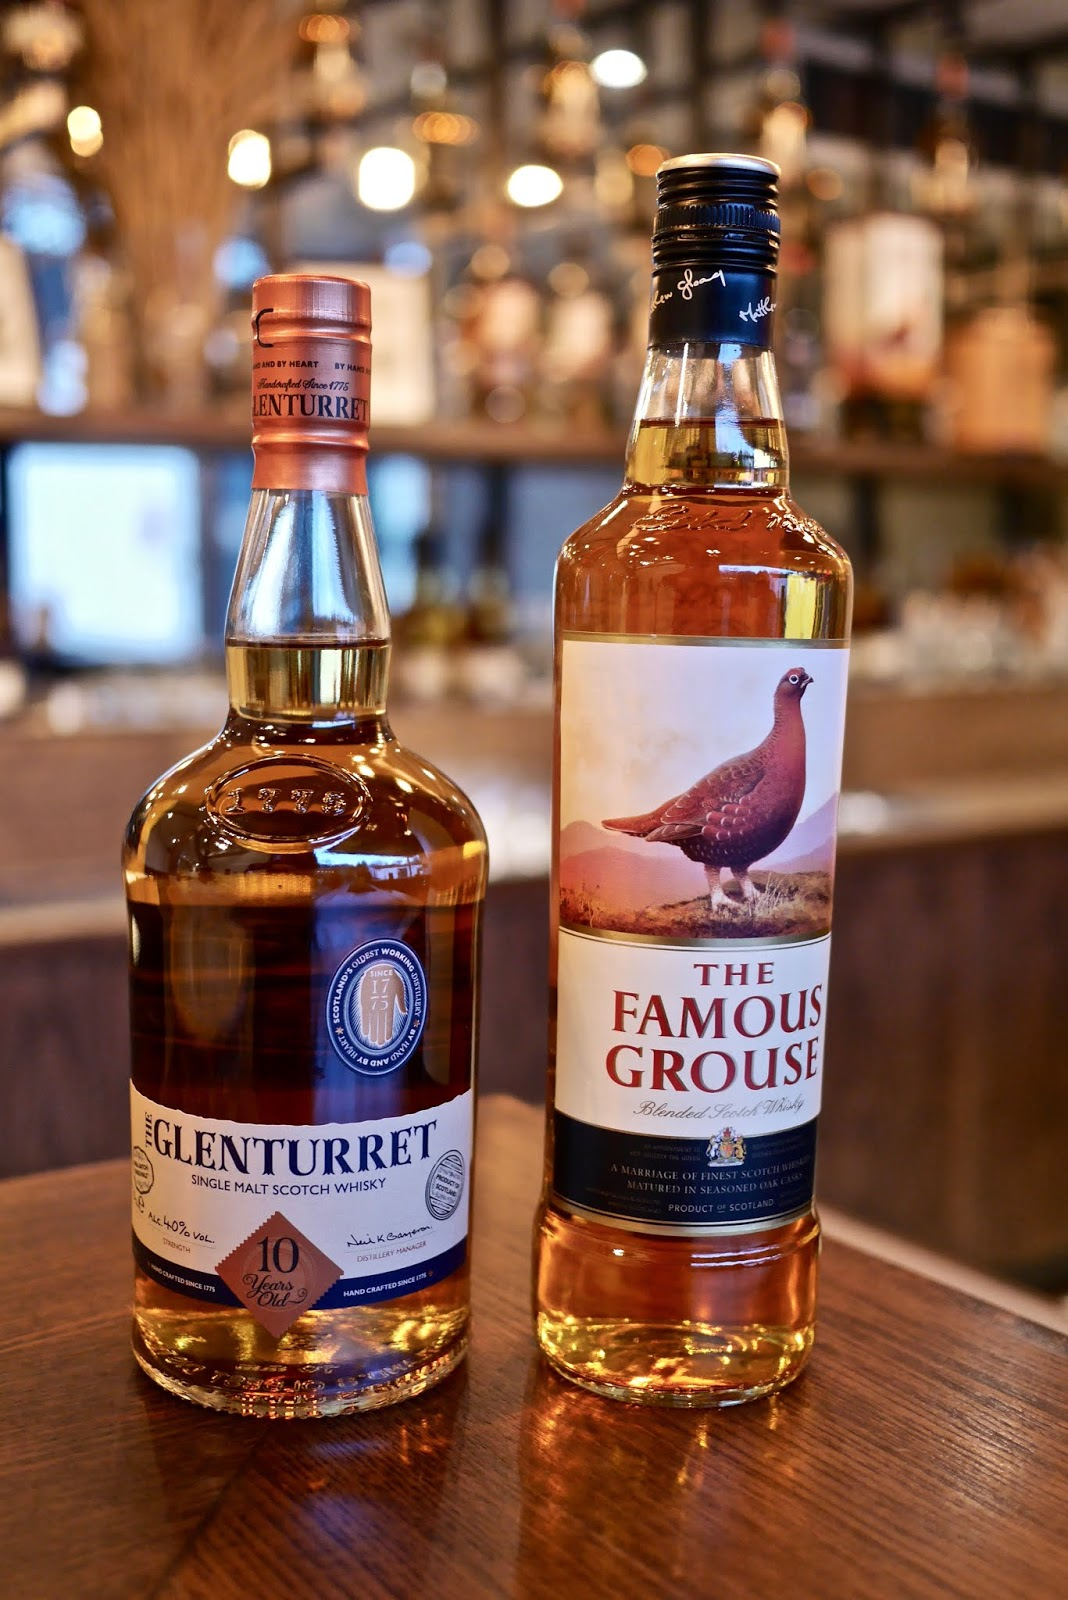 The Famous Grouse Experience at Glenturret Distillery